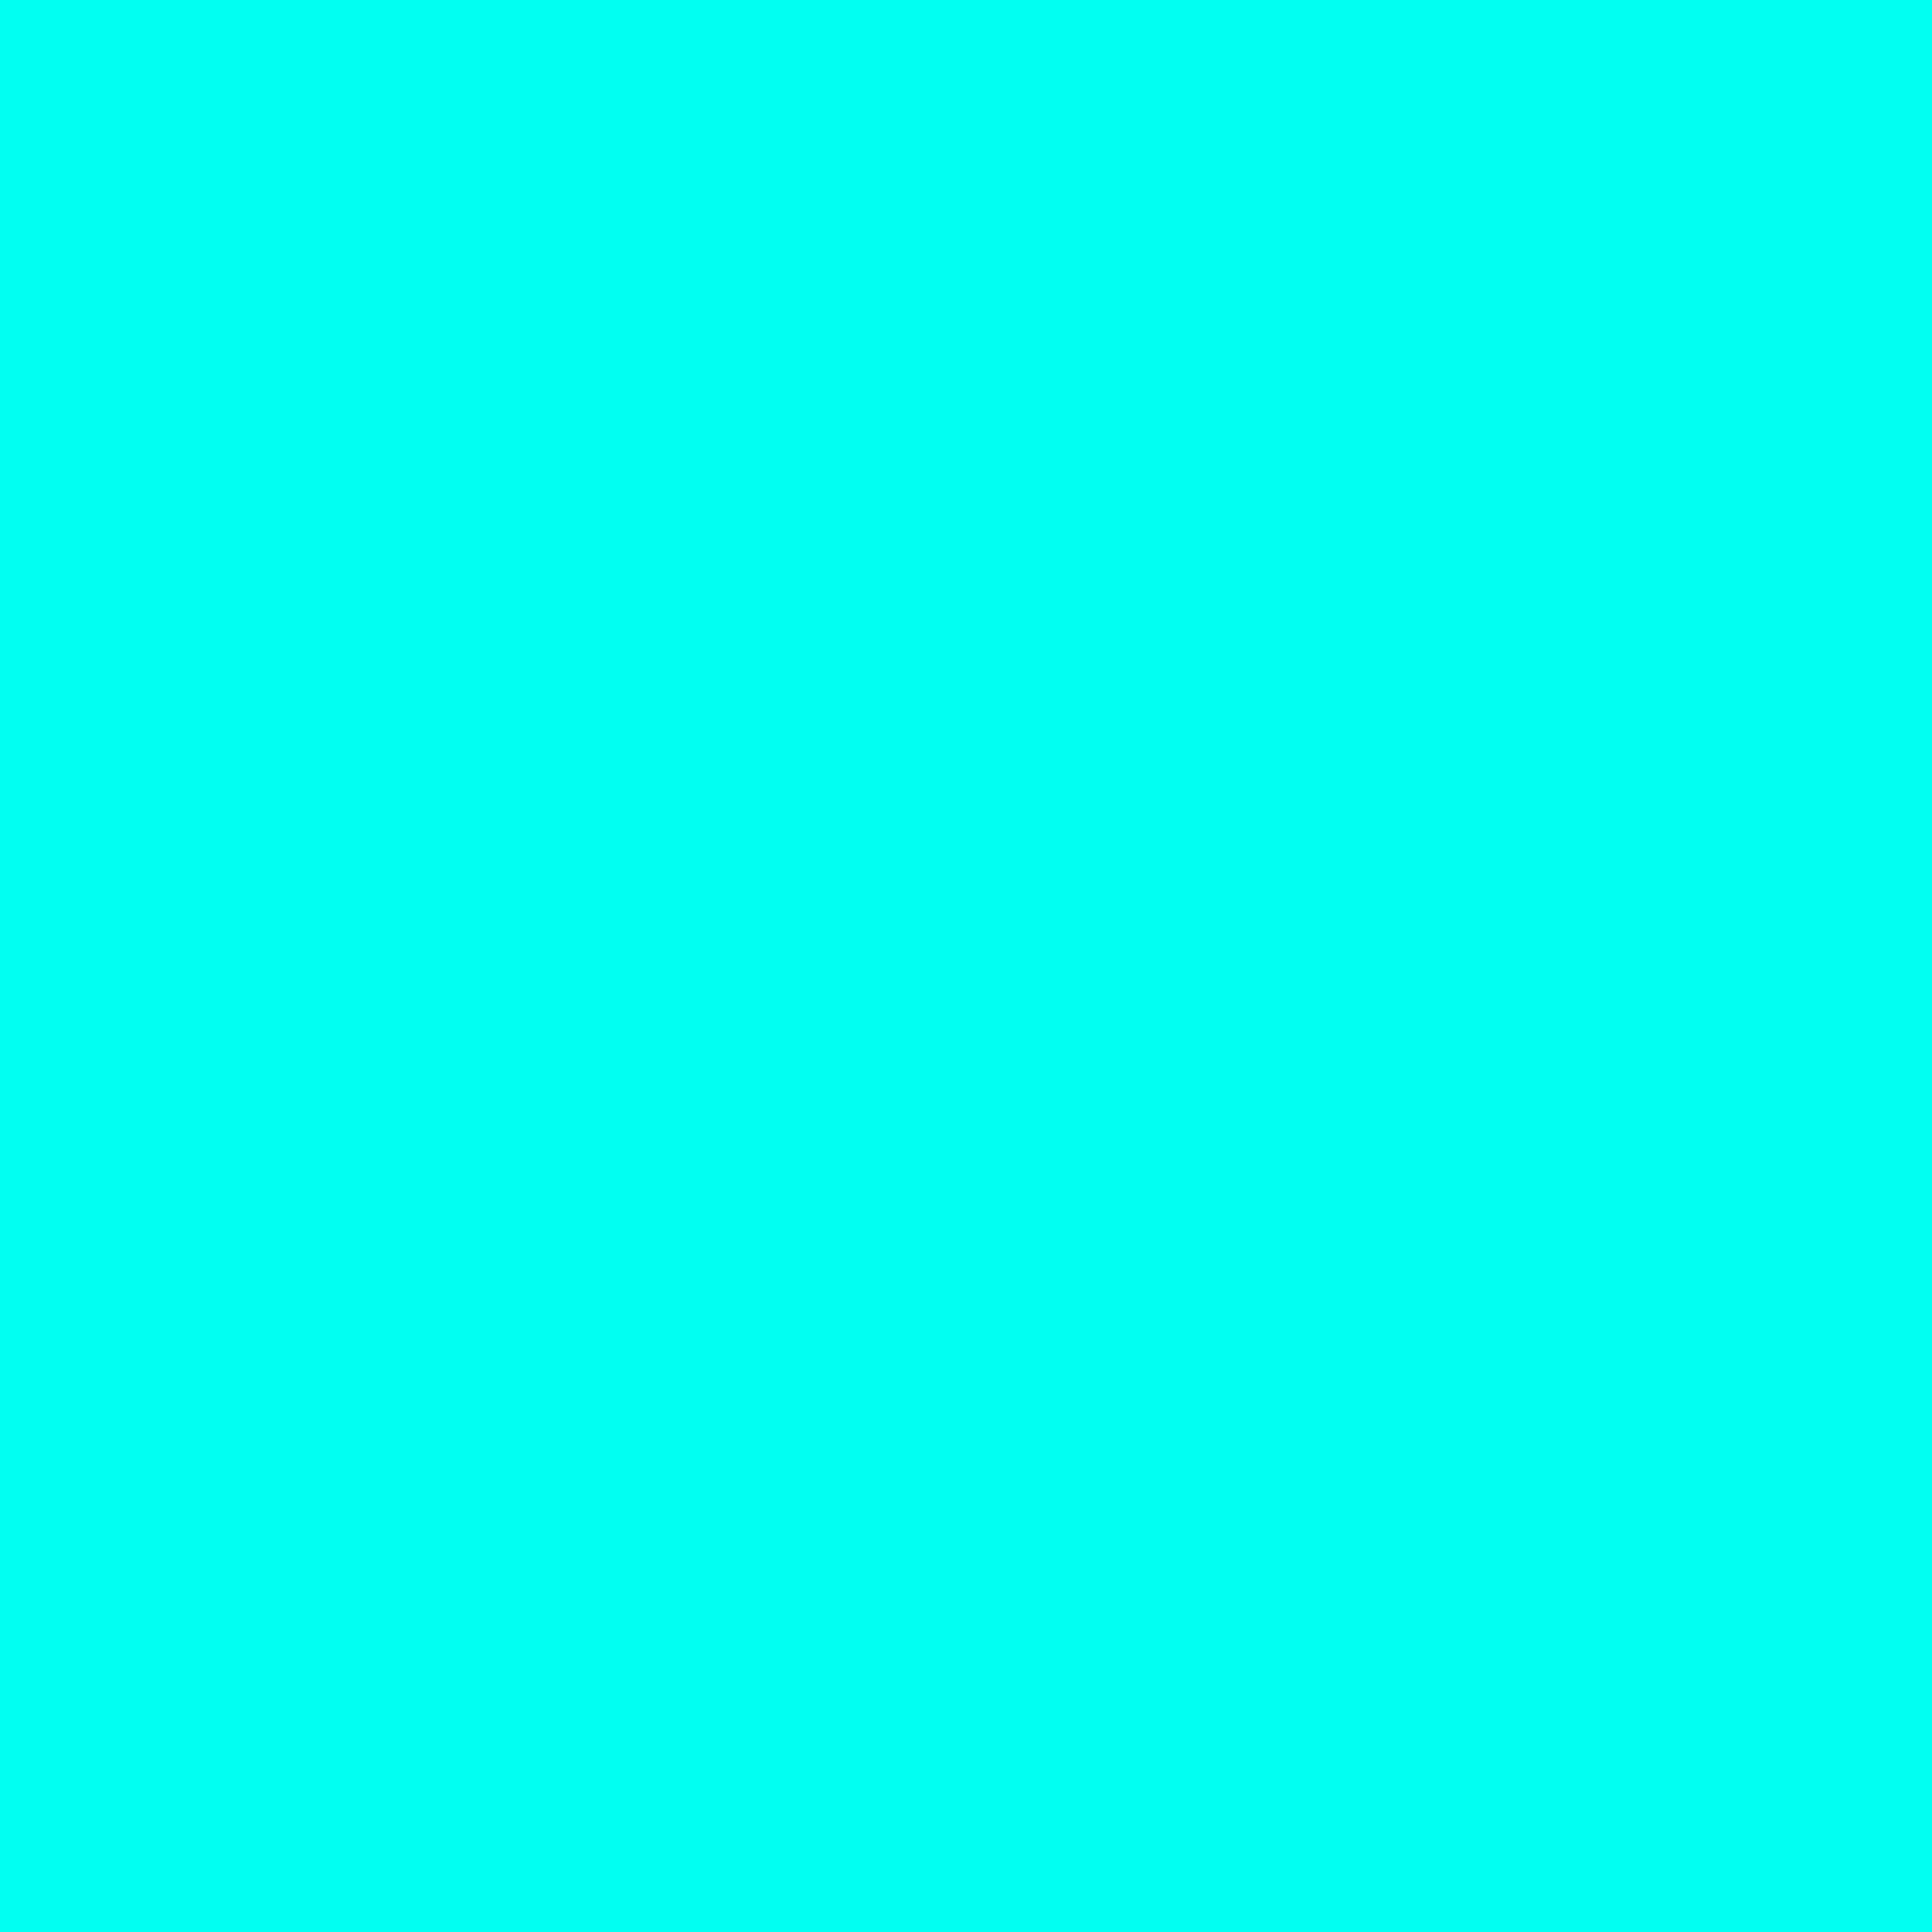 2732x2732 Turquoise Blue Solid Color Background